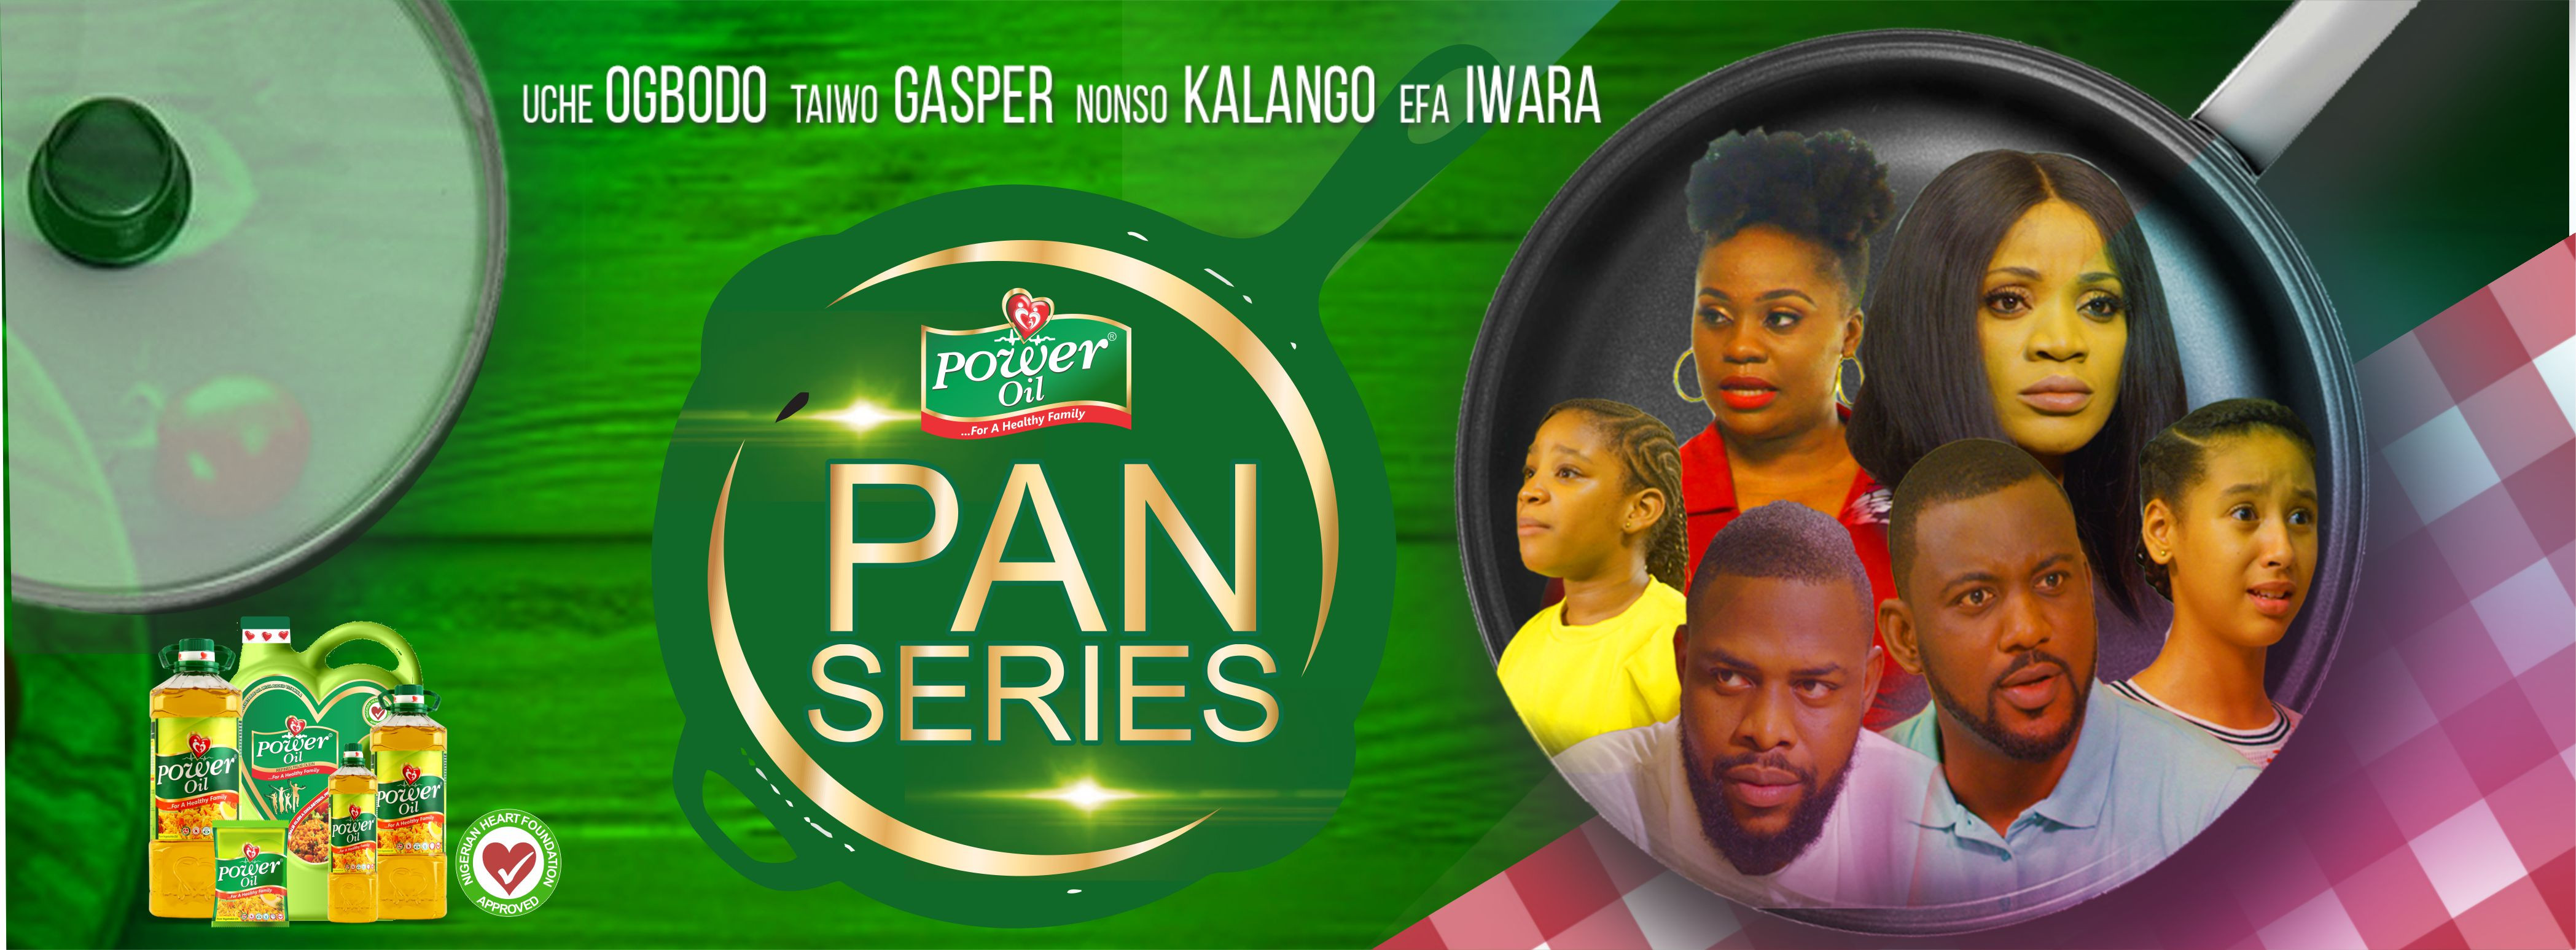 These Two Nigerian Families Have So Much in Common but This One Thing Sets Them Apart. Watch #Panseries By Power Oil to Find out